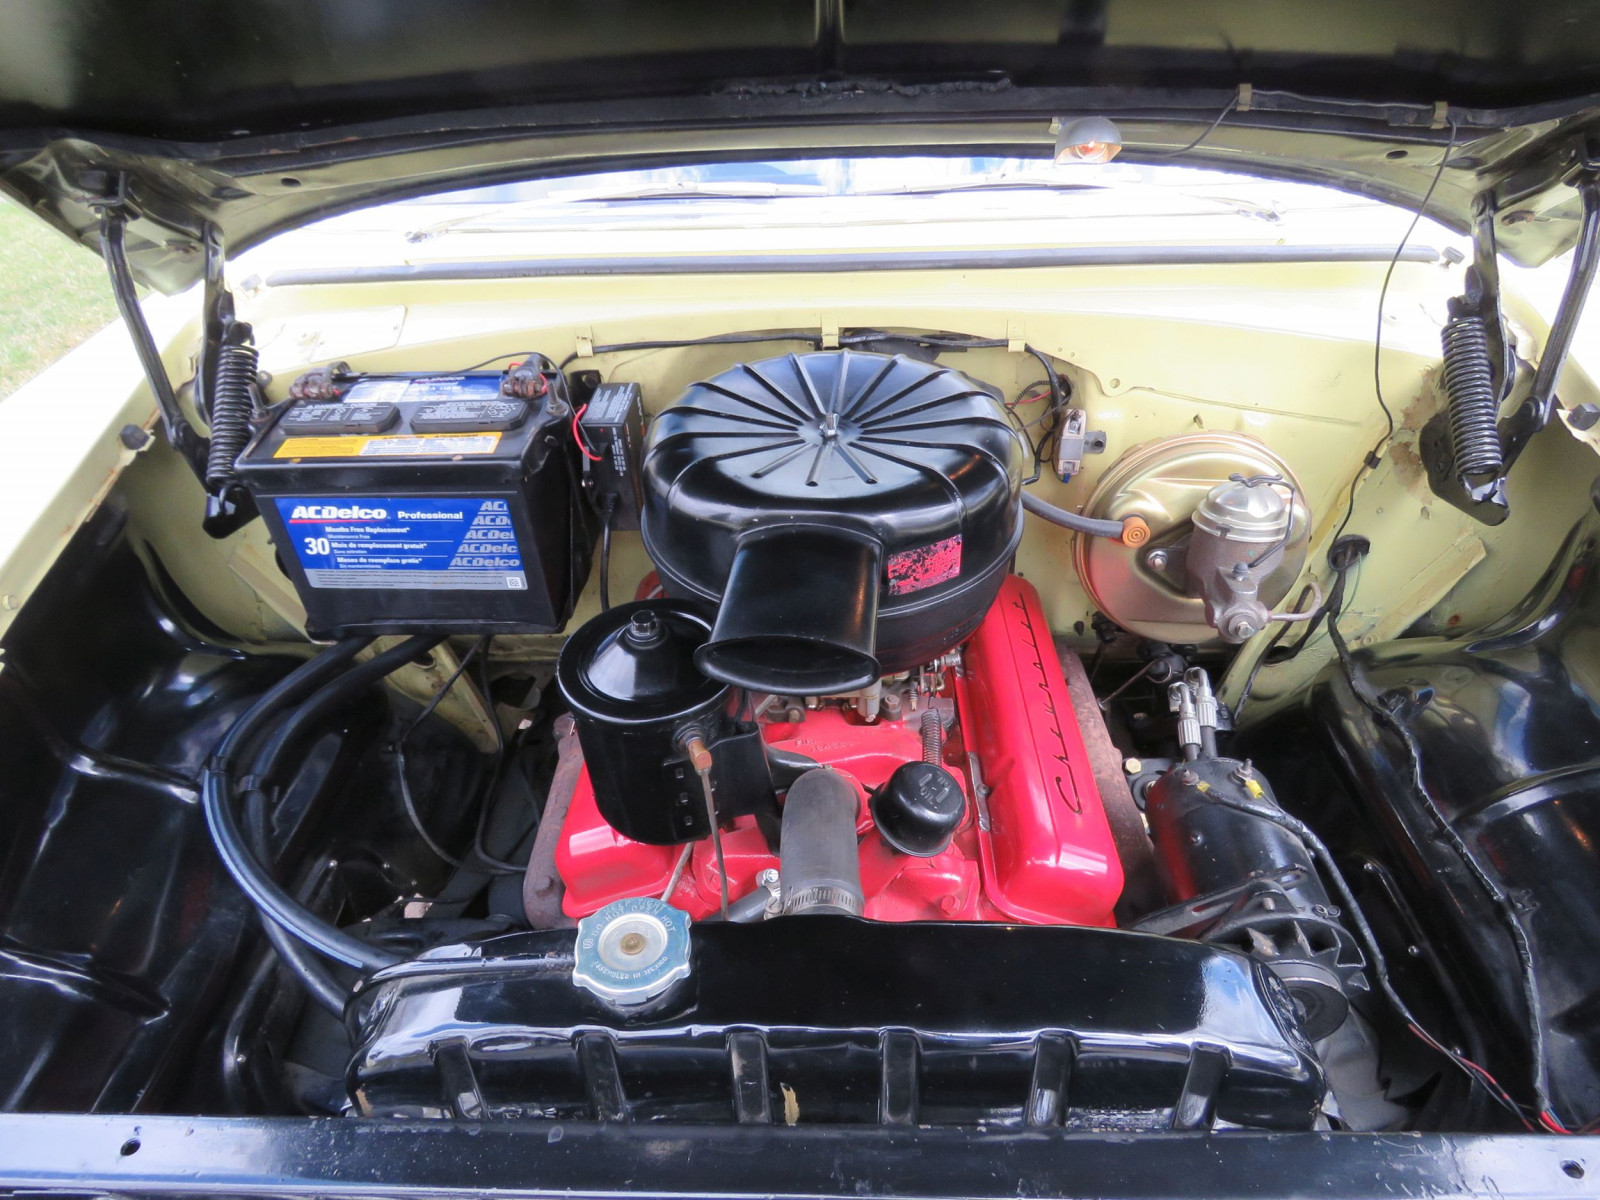 Beautiful 1955 Chevrolet Bel Air 2dr HT - Image 10